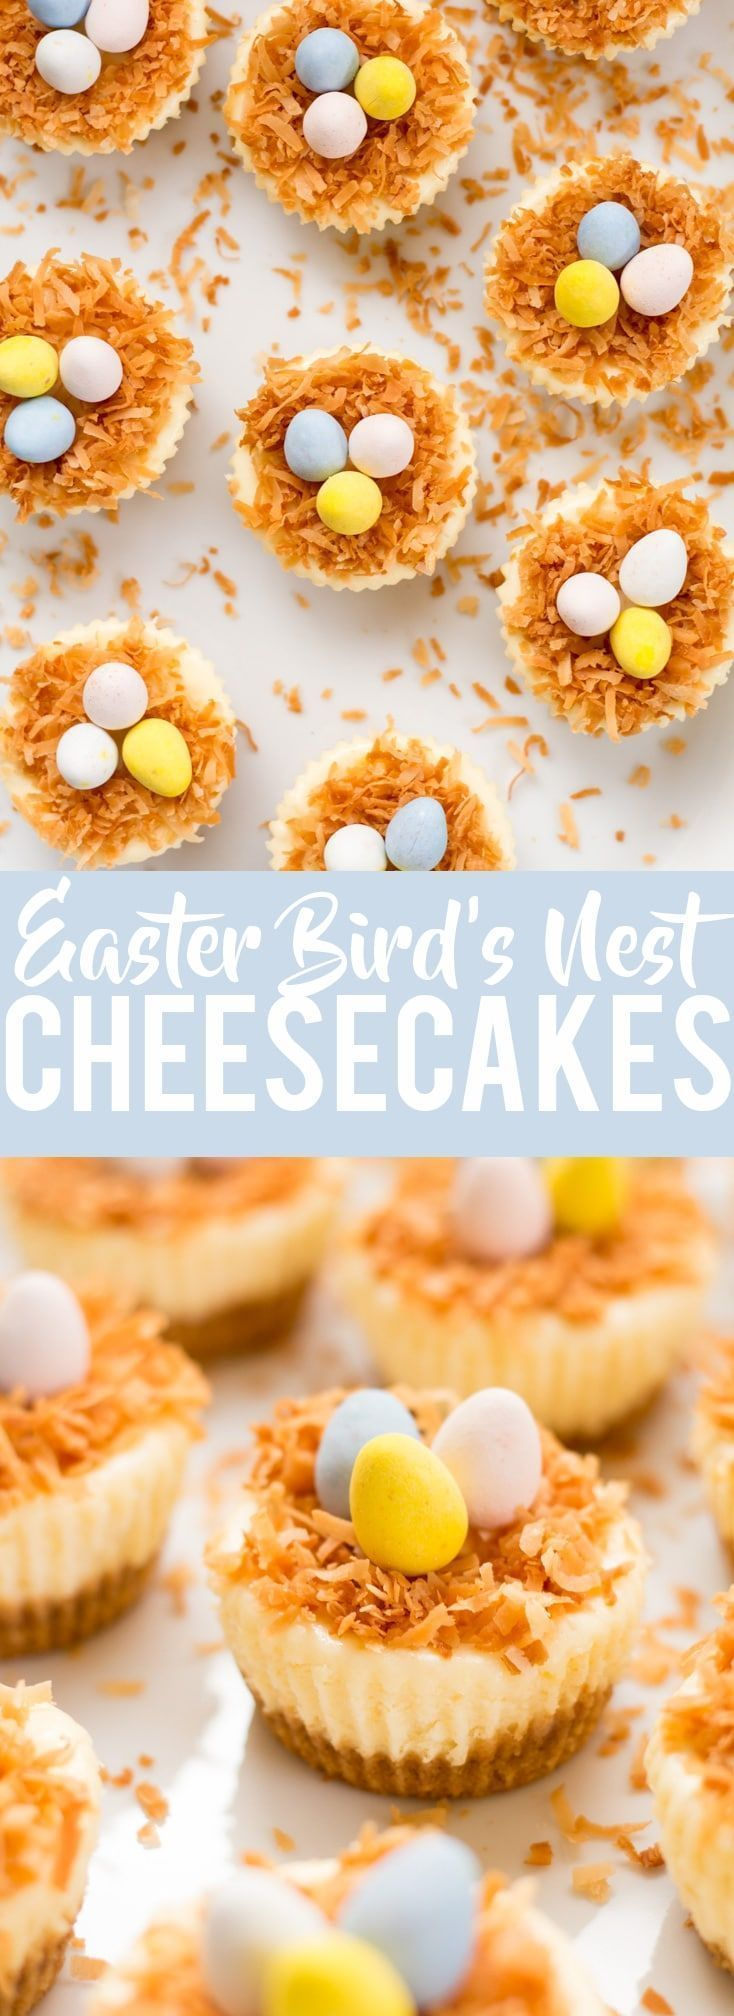 Photo of These adorable Easter Bird's Nest Mini Cheesecakes will be a hit at your Easter brunch or dinner and